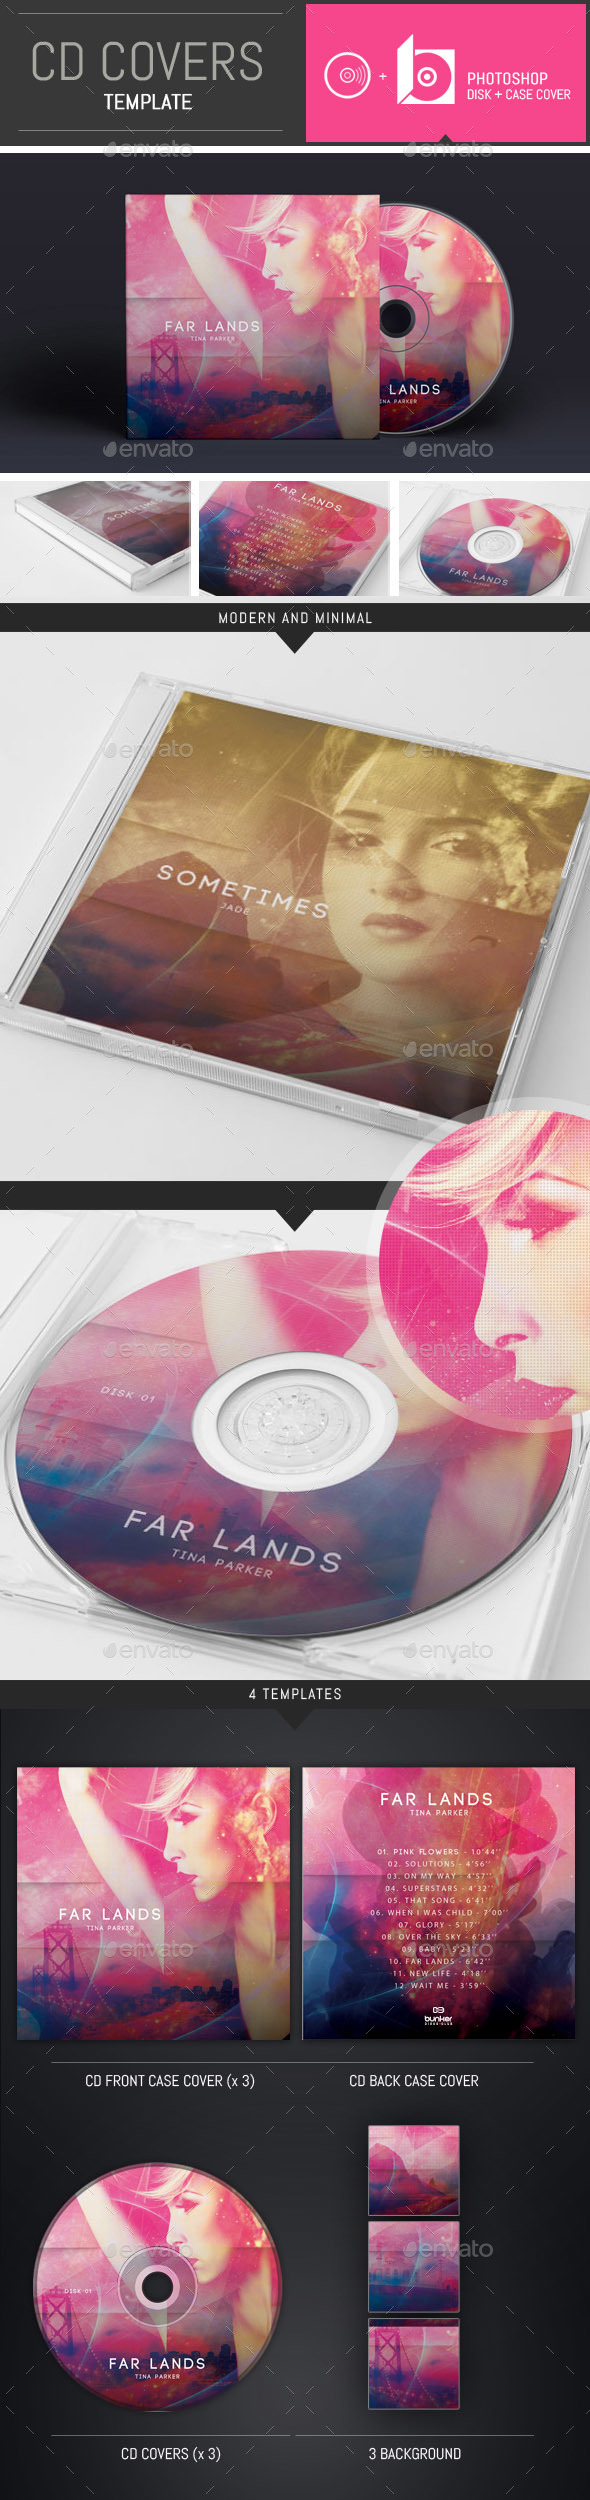 Emotional DJ / Musician CD Cover Template - CD & DVD Artwork Print Templates